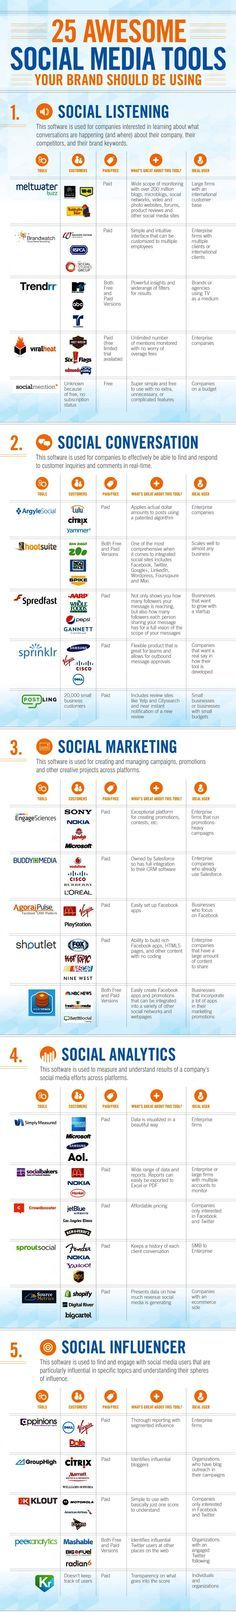 25 awesome social media tools. #socialmedia #marketing #infographic ==>Find umpteen fantastic digital marketing company at http://successlakeseo.com/online-marketing/